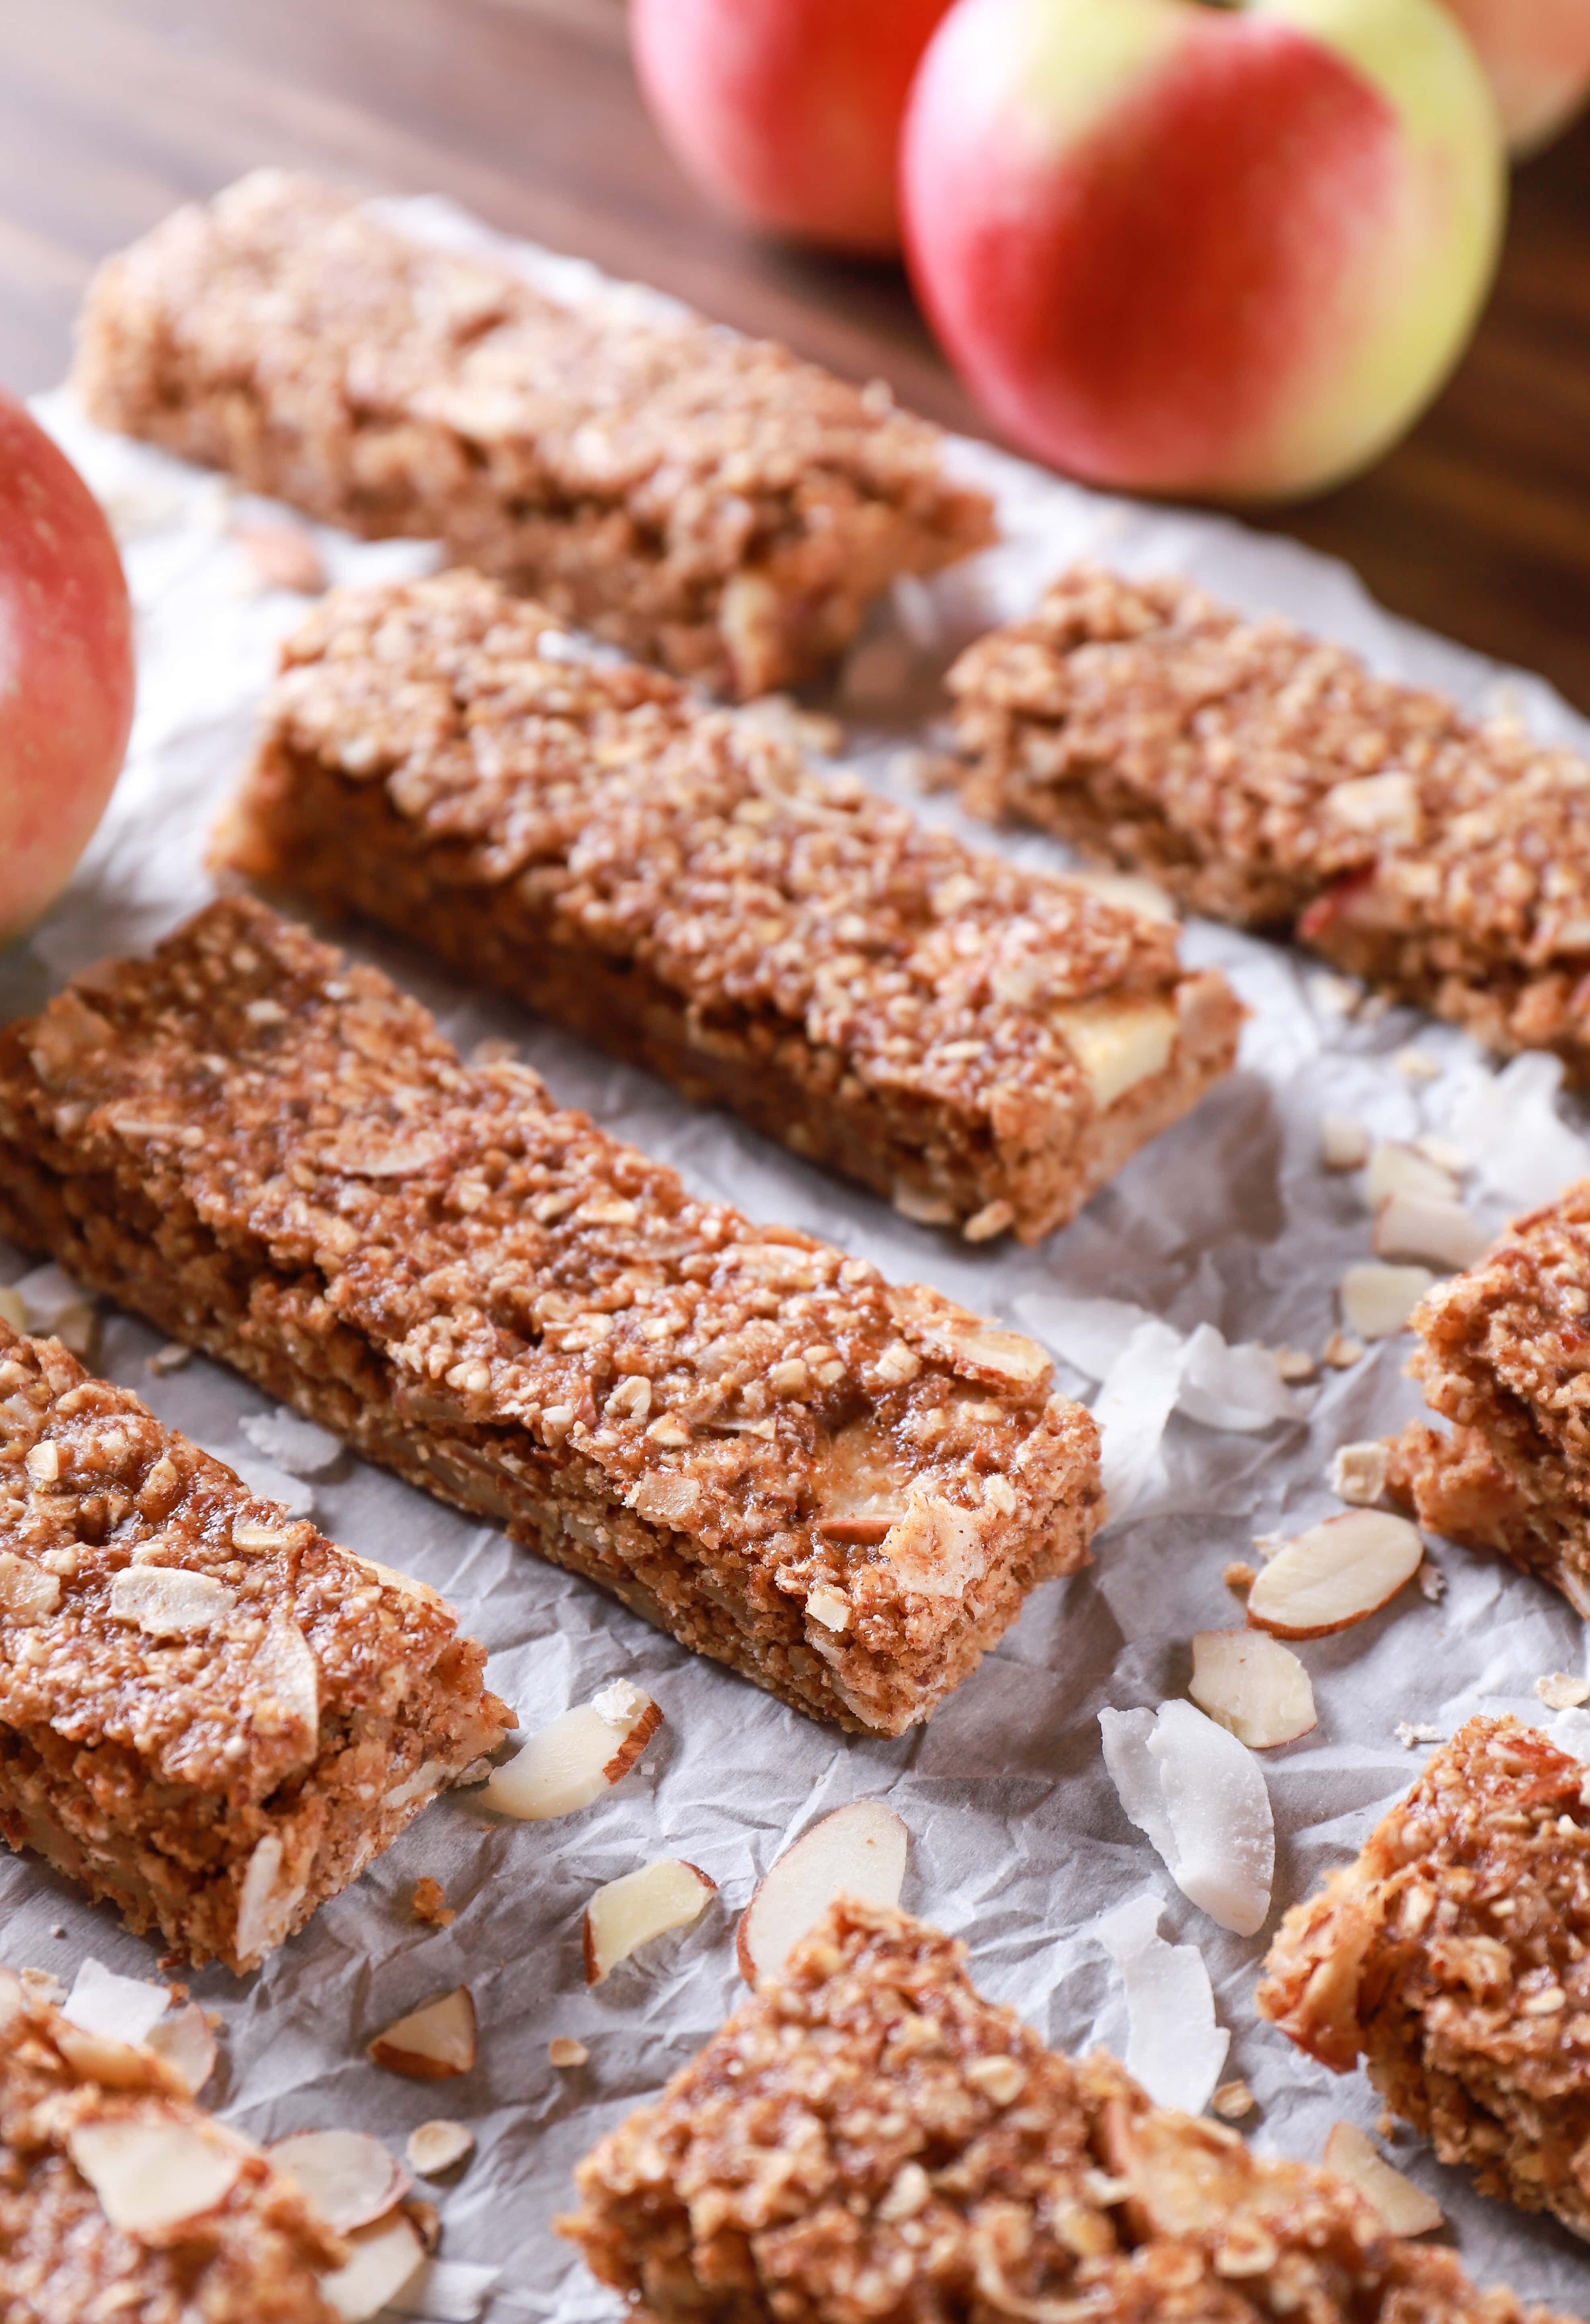 Soft Baked Apple Almond Granola Bars with apples, coconut, sliced almonds, and oats. Recipe from A Kitchen Addiction